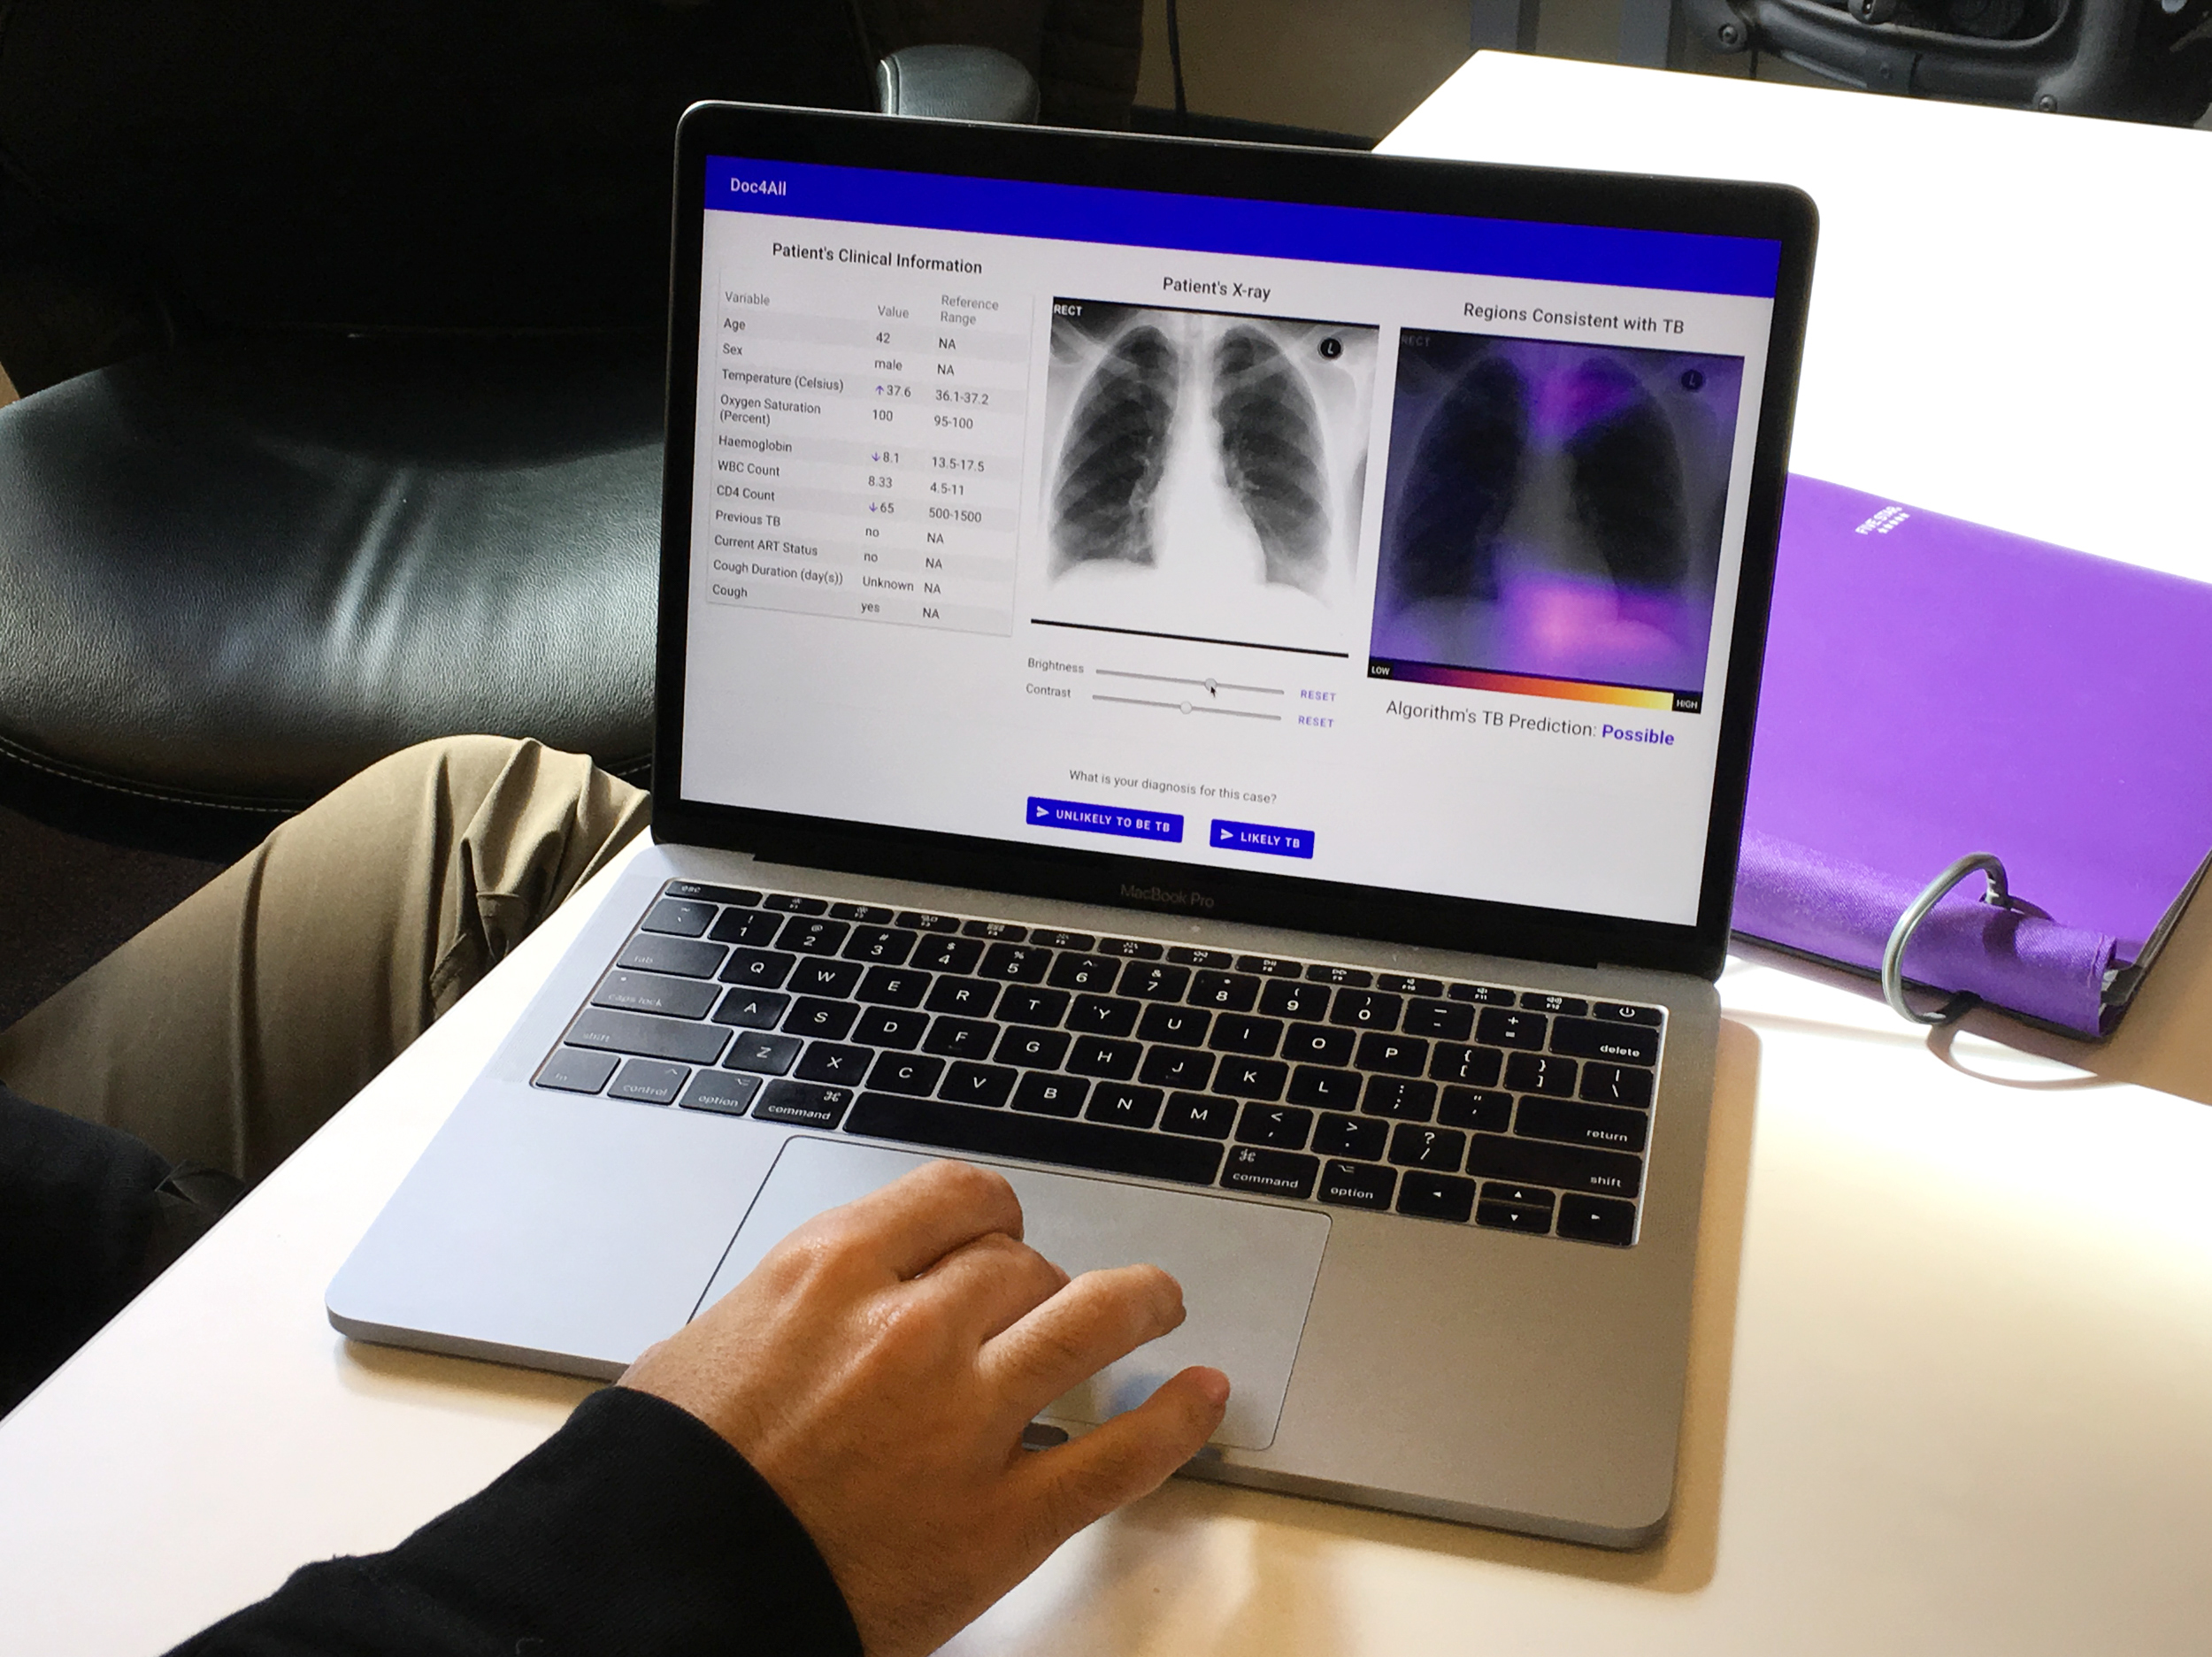 How Can Doctors Be Sure A Self-Taught Computer Is Making The